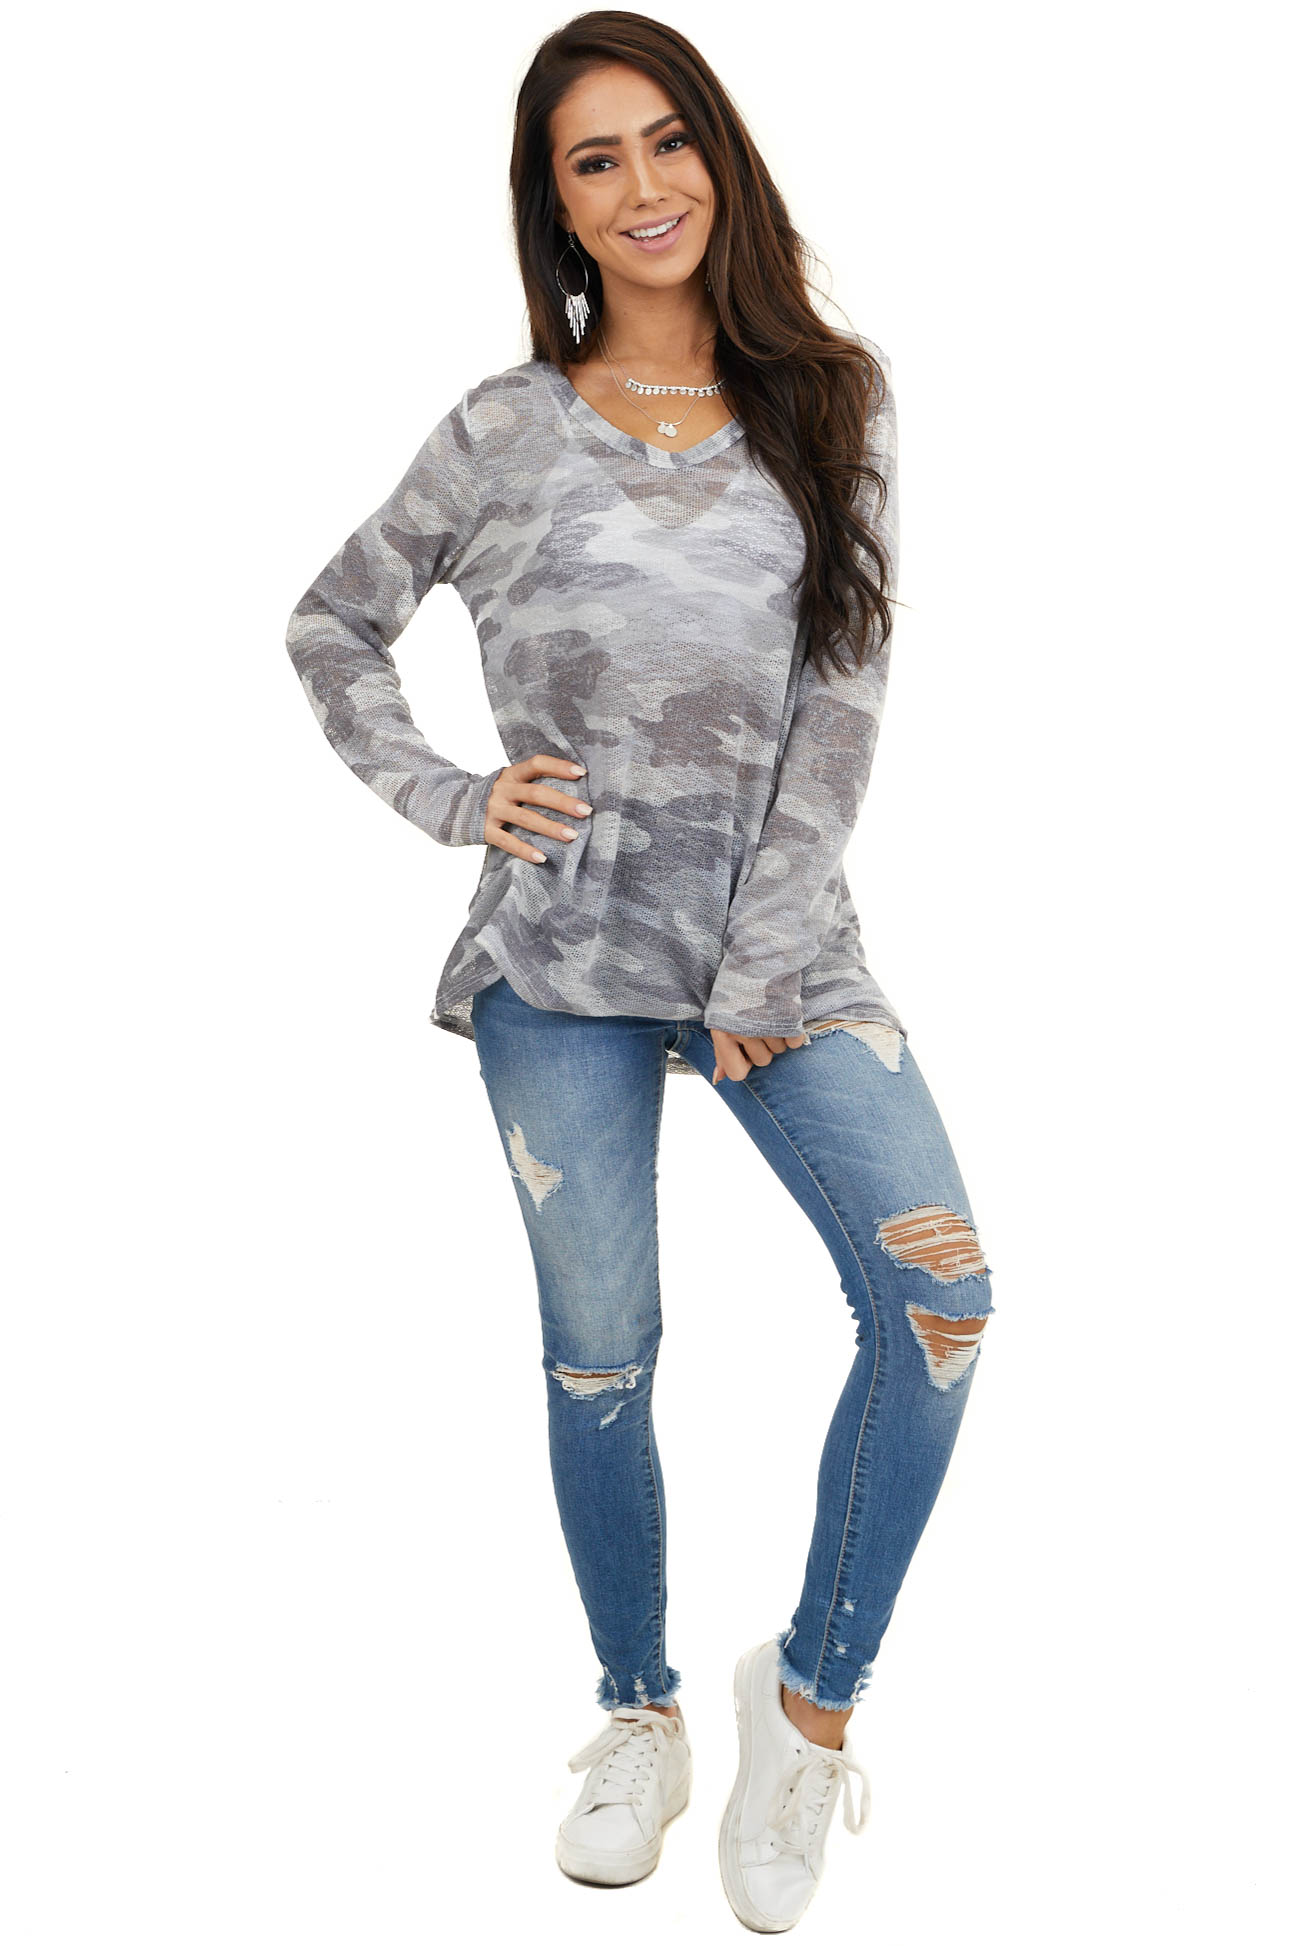 Stormy Grey Camo Long Sleeve Lightweight Loose Knit Top